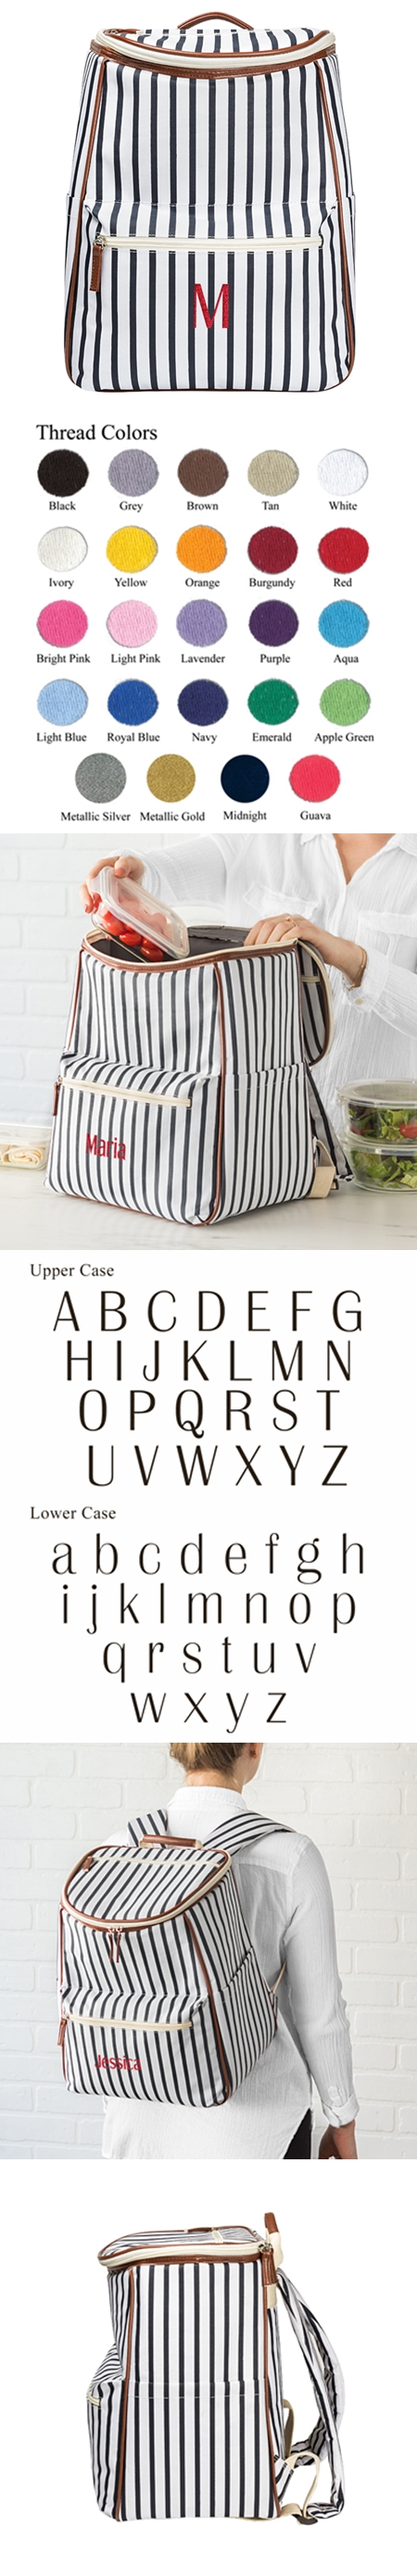 Cathy s Concepts Personalized White-and-Navy Striped Backpack Cooler ... 50d00d1c503c8